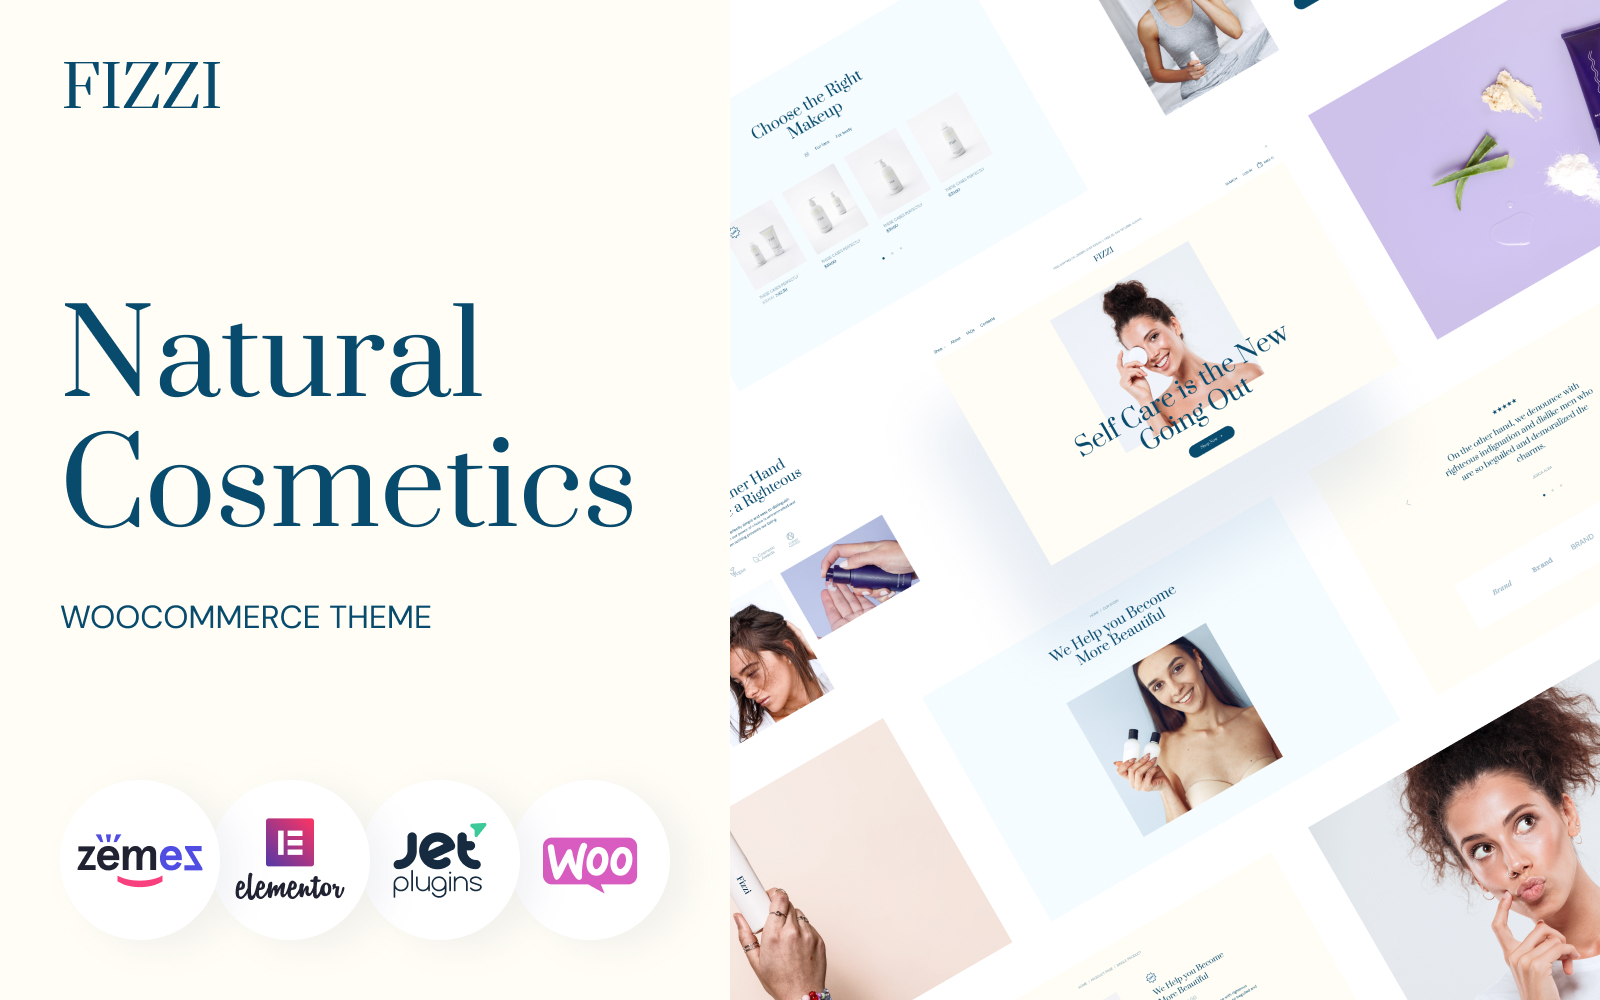 Natural Cosmetics Website Template - Fizzi №139732